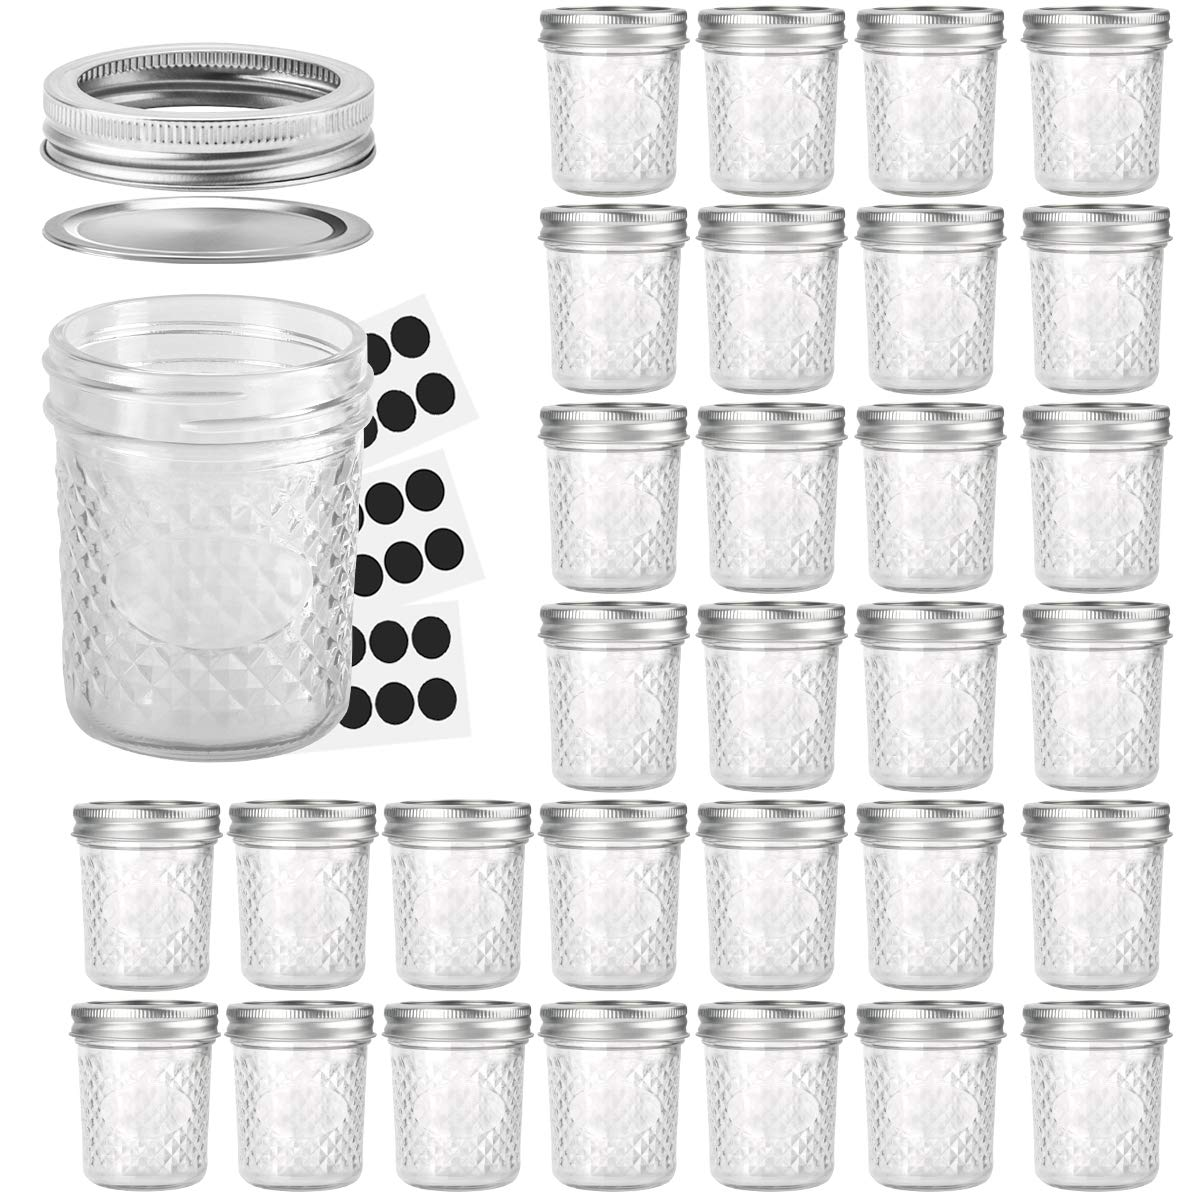 Mason Jars 6 OZ, VERONES 30 PACK 6oz Mason jars Canning Jars Jelly Jars With Lids and Bands, Ideal for Jam, Honey, Wedding Favors, Shower Favors, Baby Foods